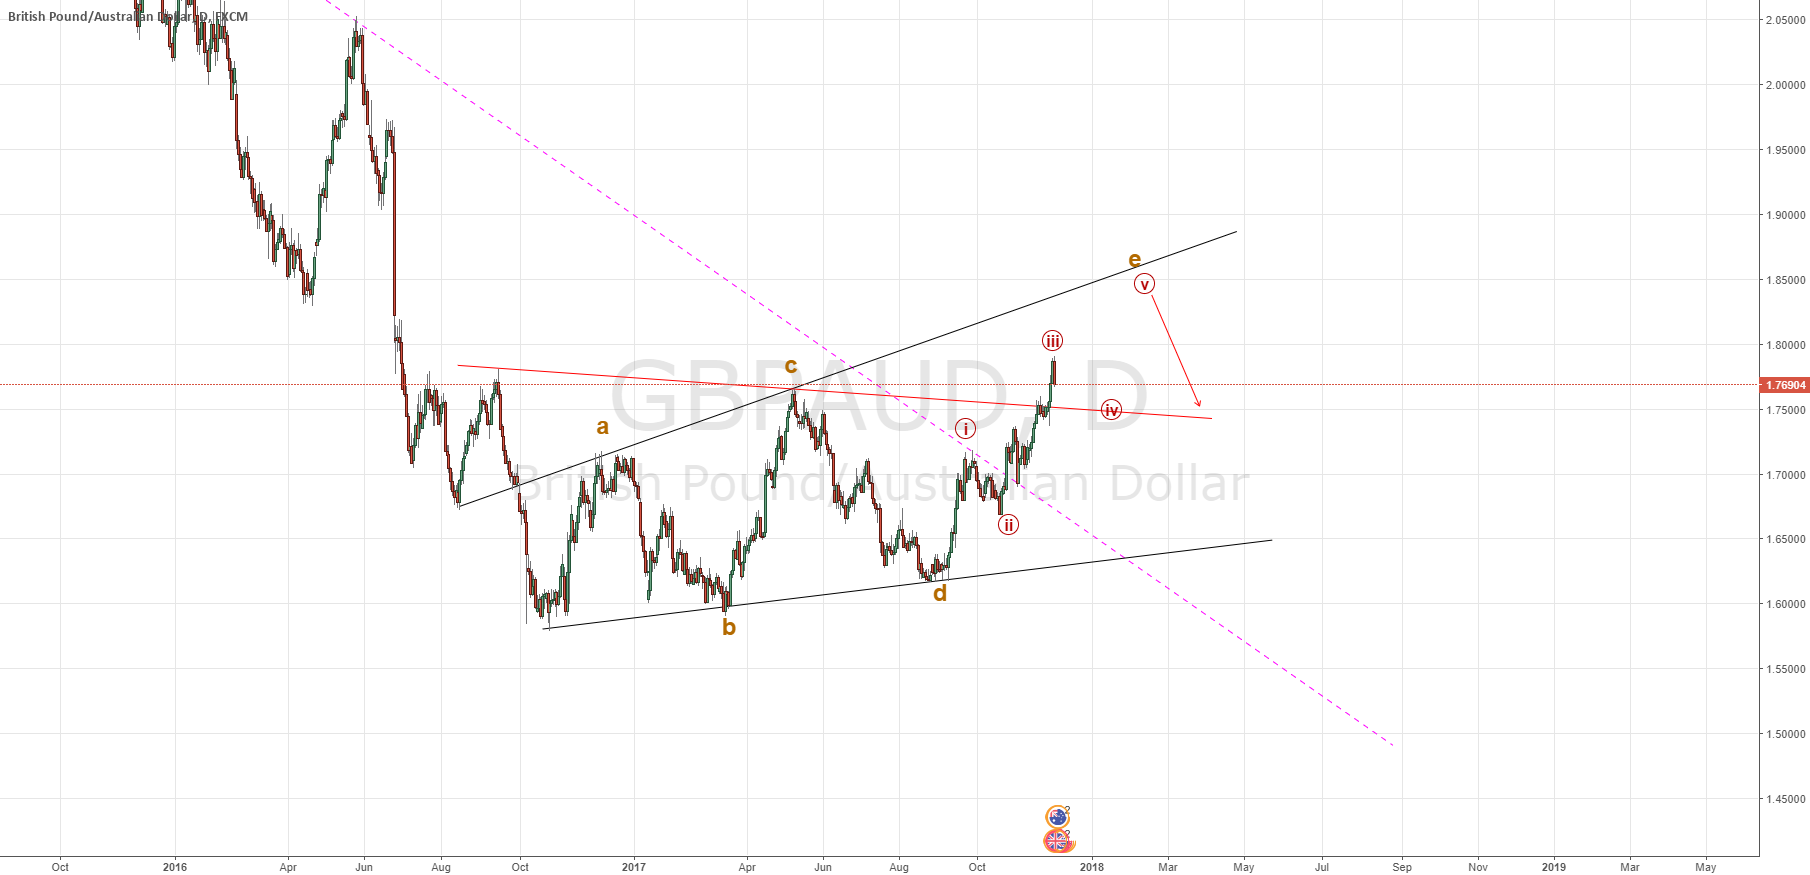 Just an idea about GBPAUD